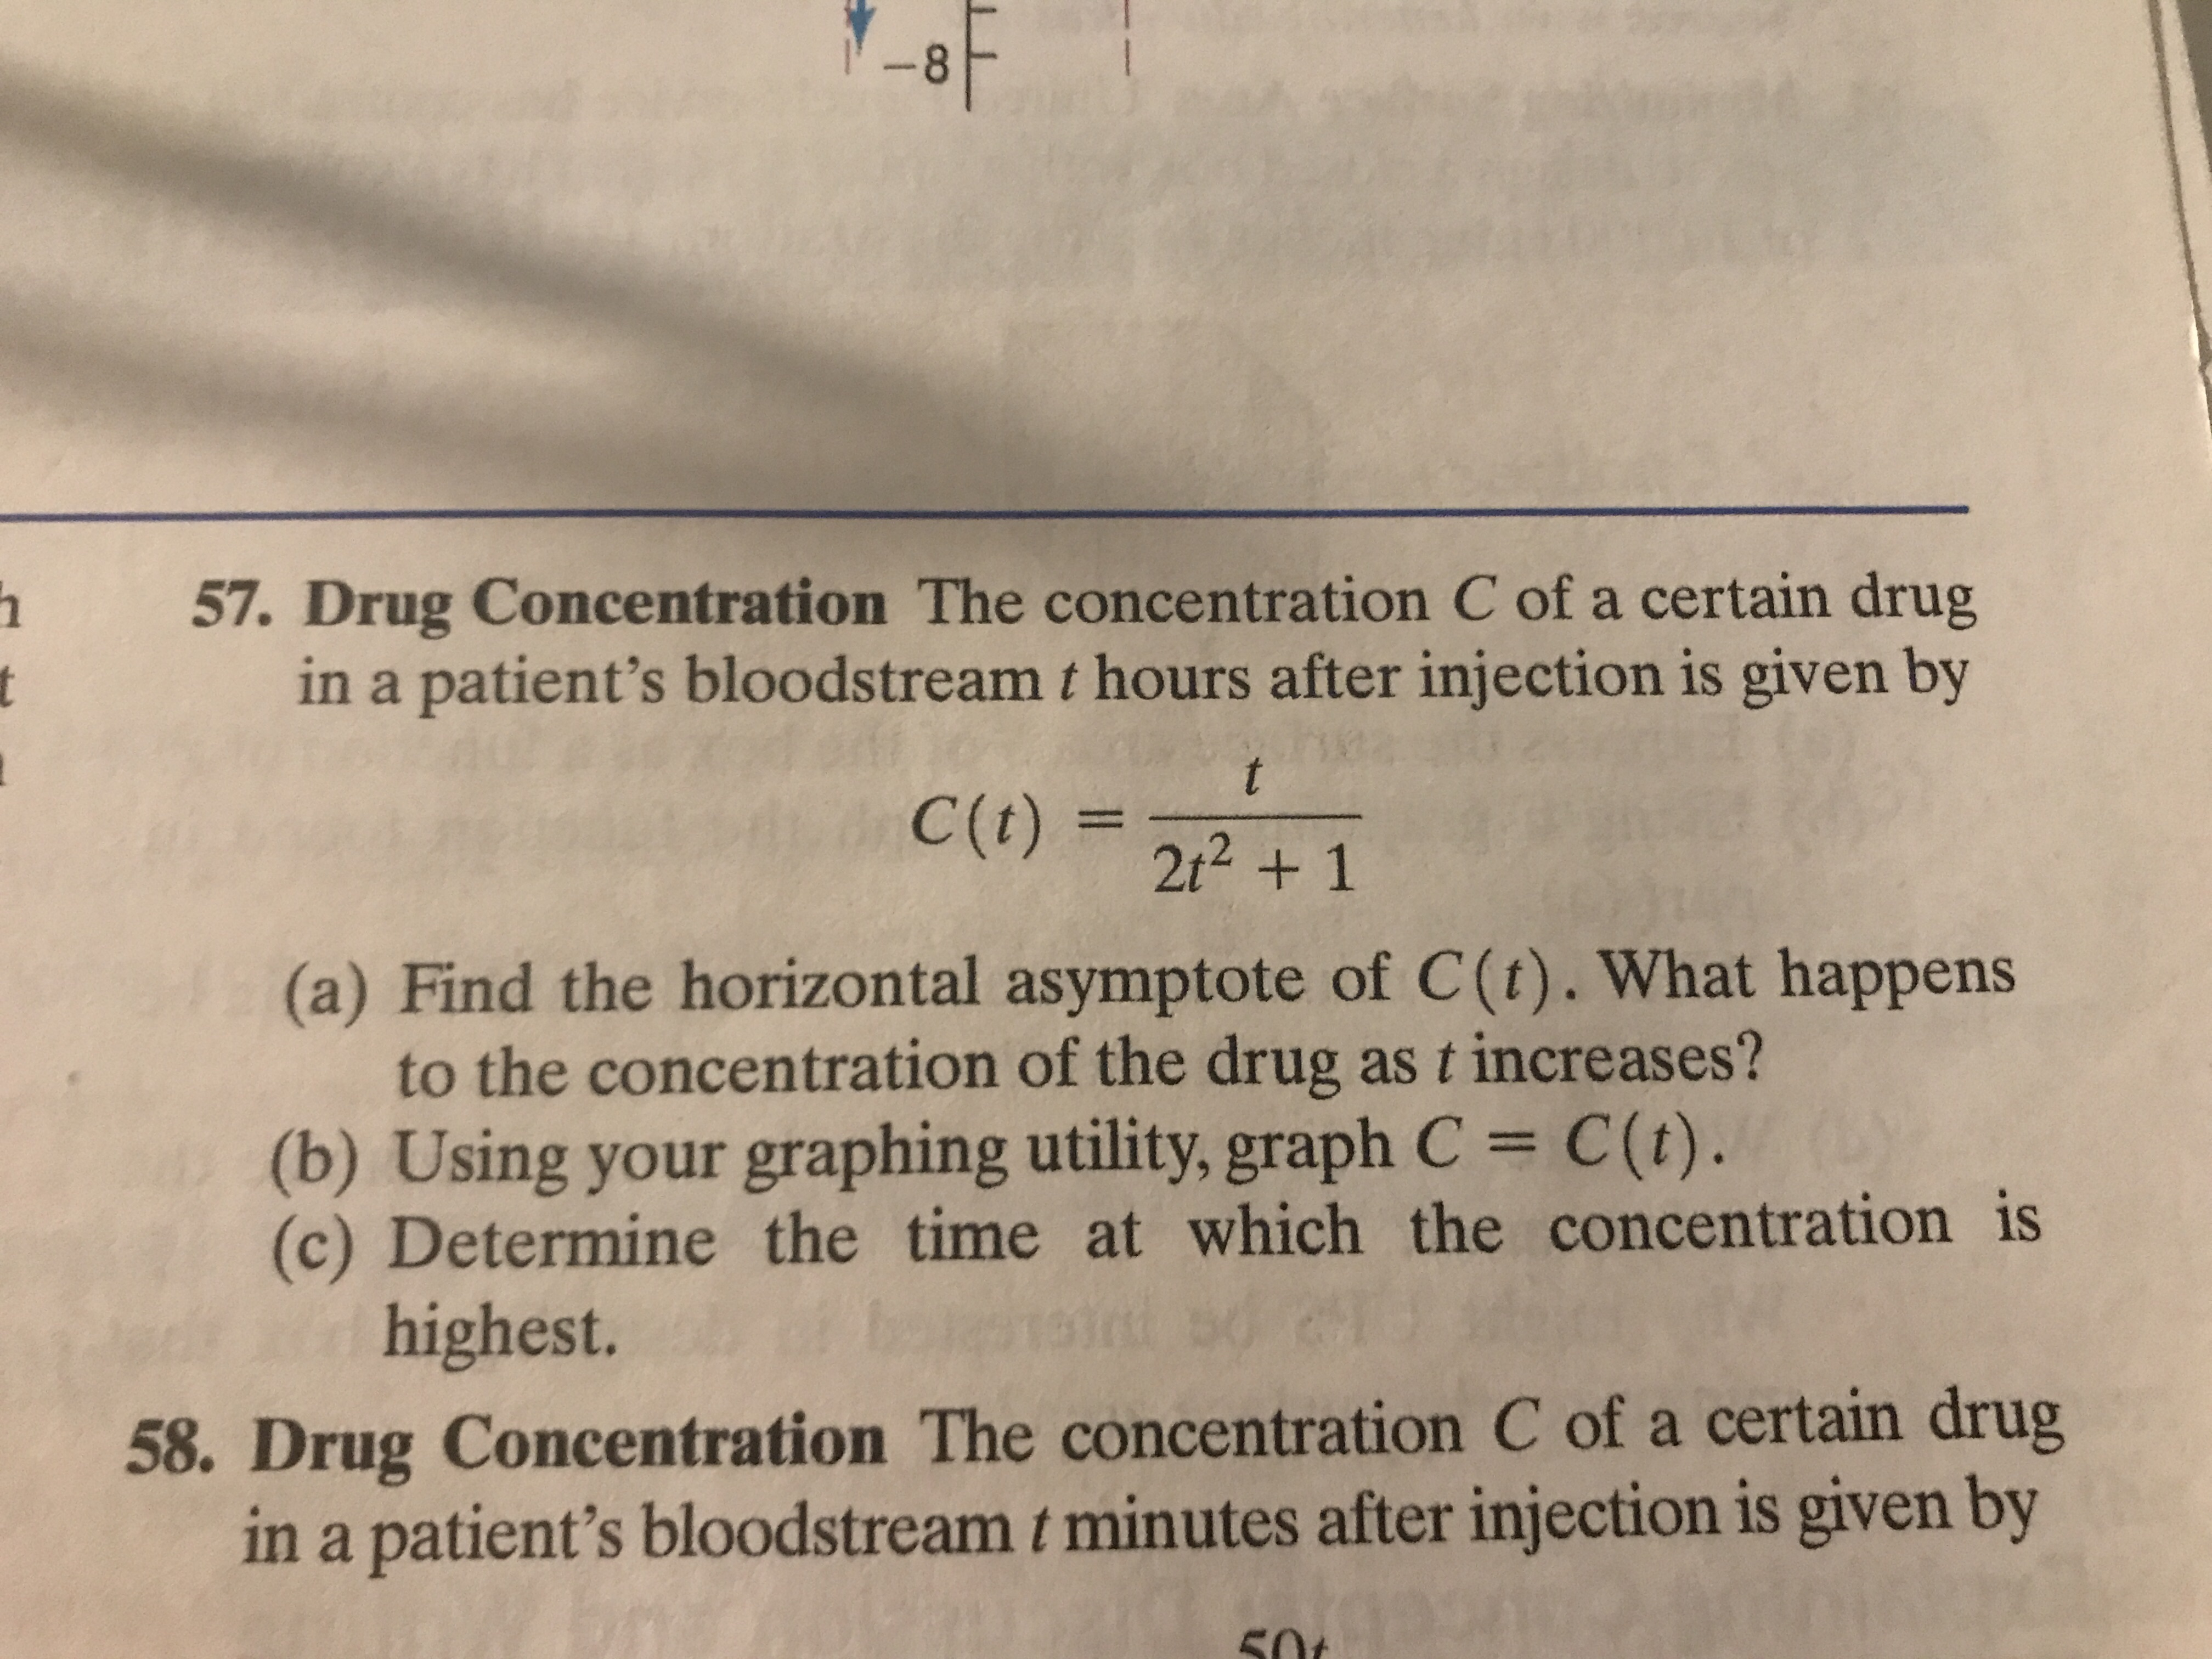 57. Drug Concentration The concentration C of a certain drug in a patient's bloodstream t hours after injection is given by C(t) = 2t2 + 1 (a) Find the horizontal asymptote of C (t). What happens to the concentration of the drug as t increases? (b) Using your graphing utility, graph C C(t). (c) Determine the time at which the concentration is highest. 58. Drug Concentration The concentration C of a certain drug in a patient's bloodstream t minutes after injection is given by